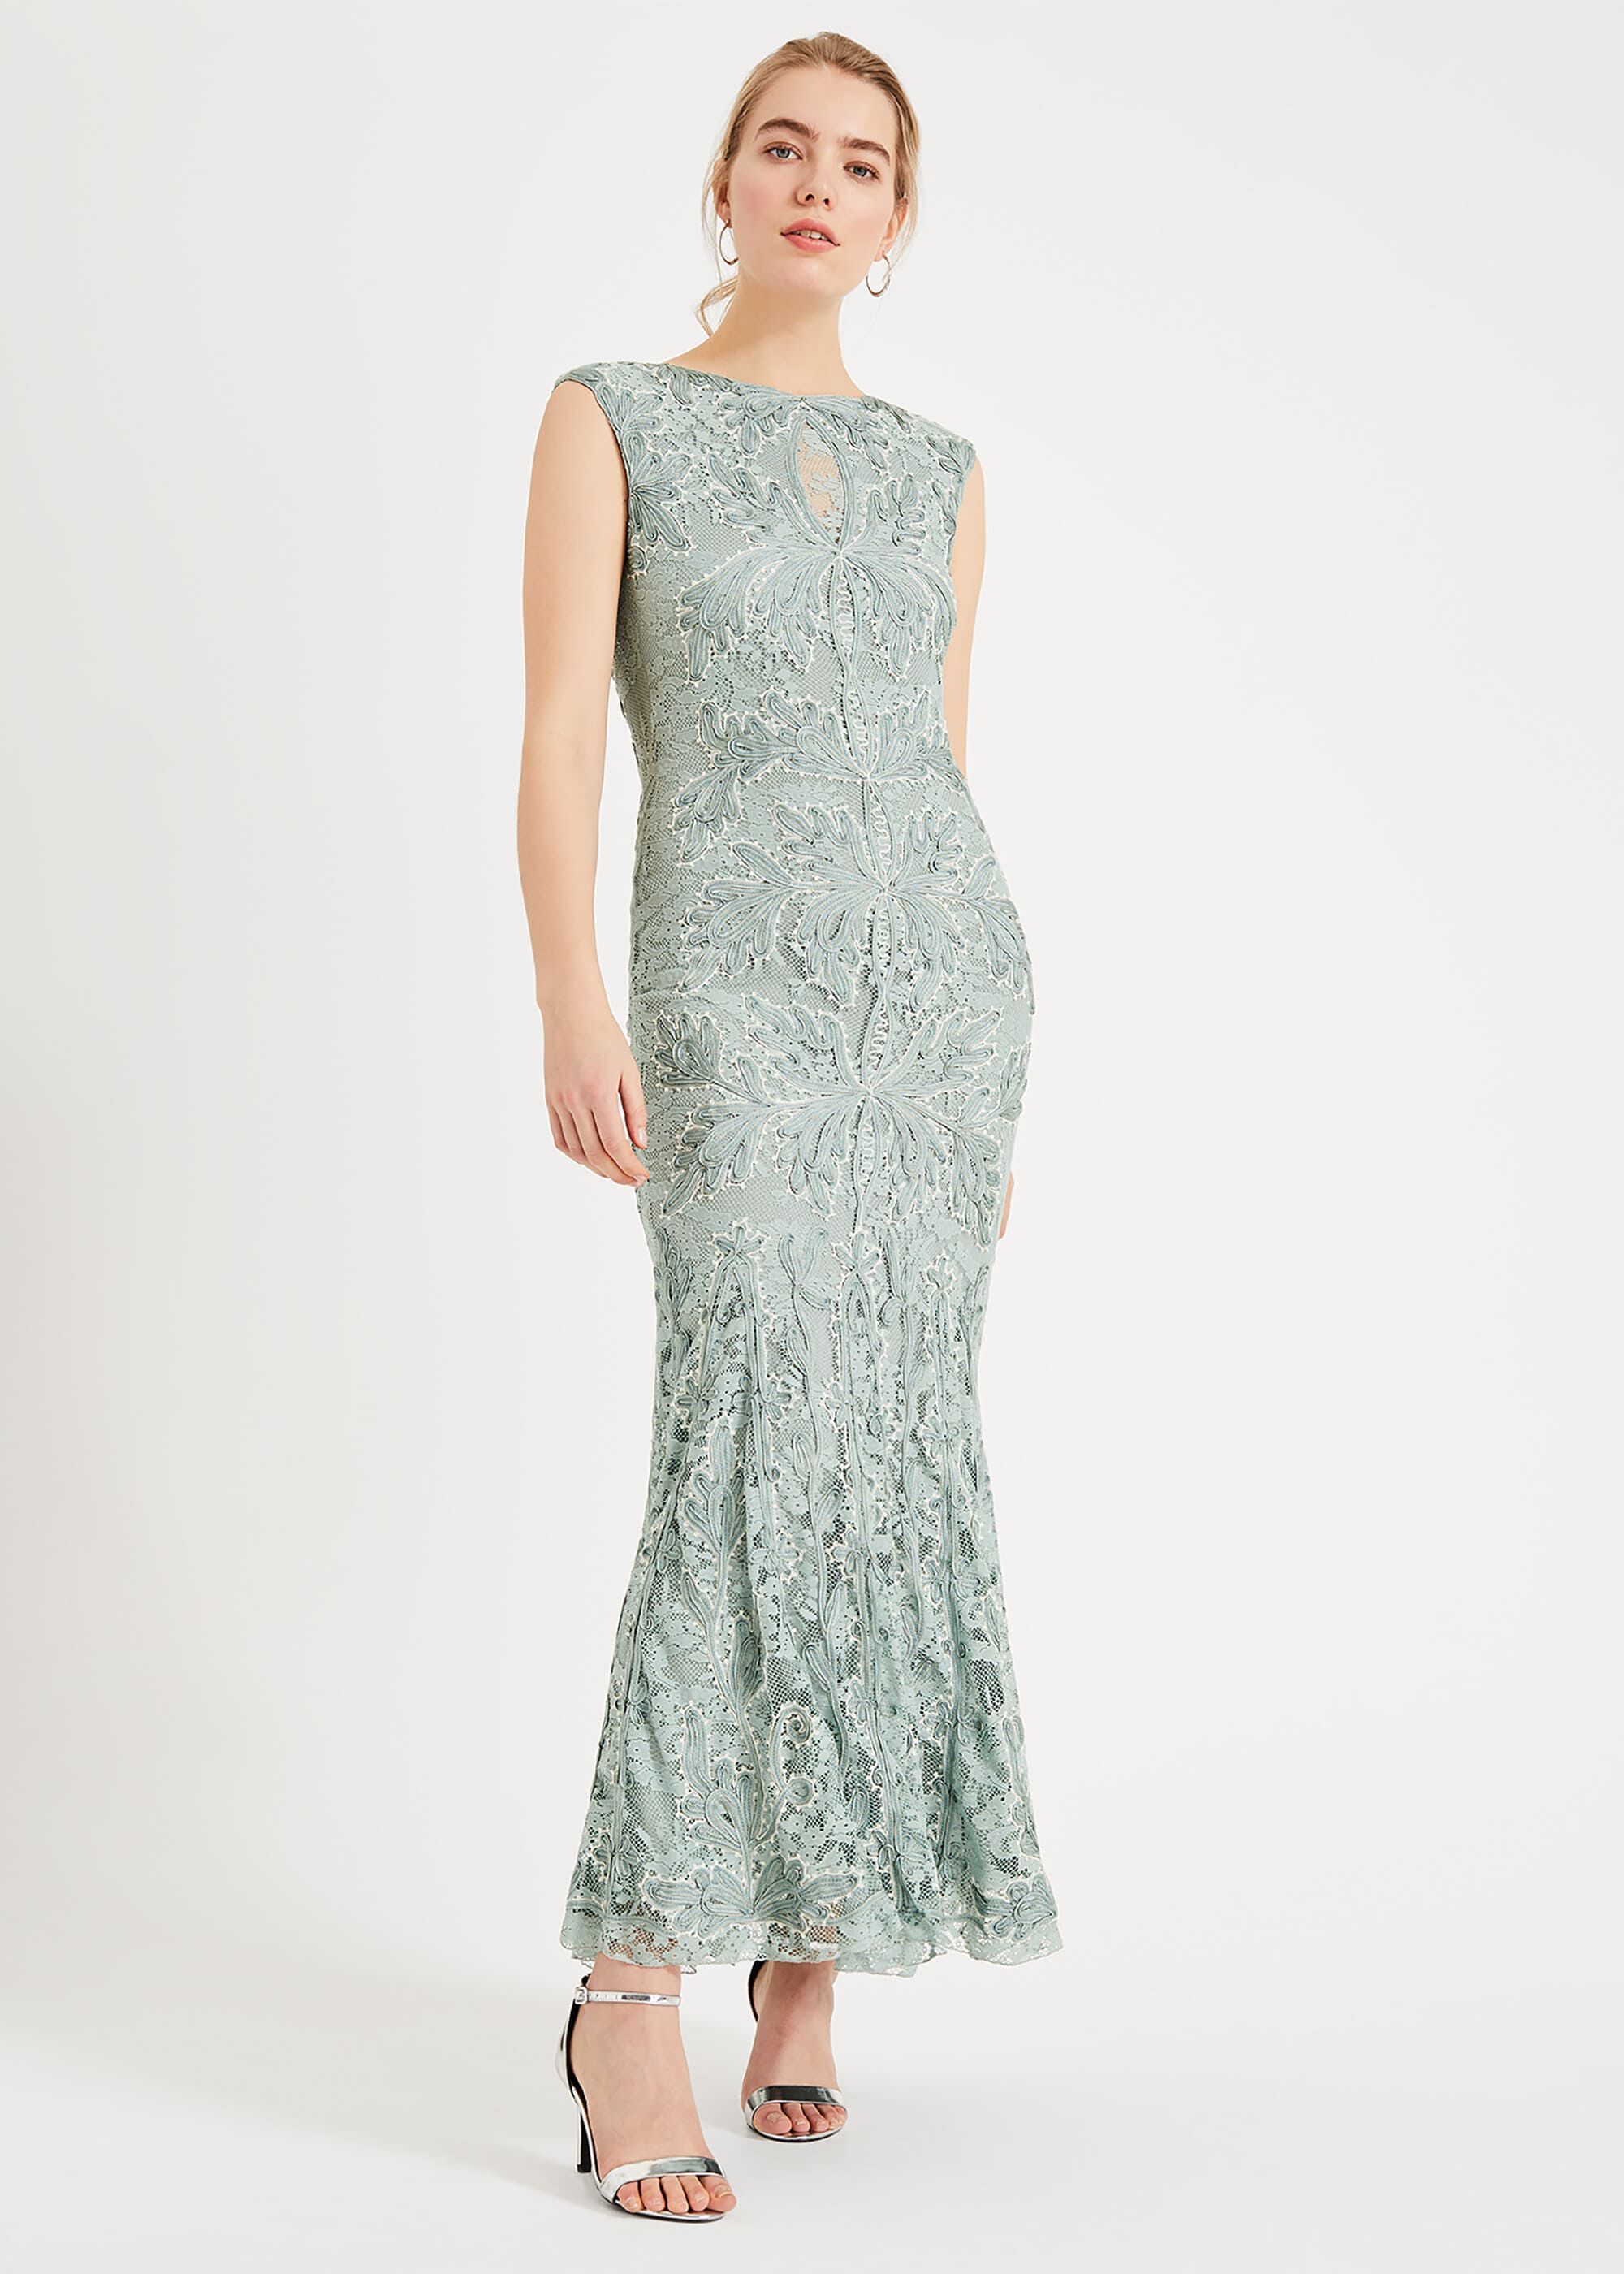 Phase Eight Paige Tapework Lace Maxi Dress, Green, Maxi